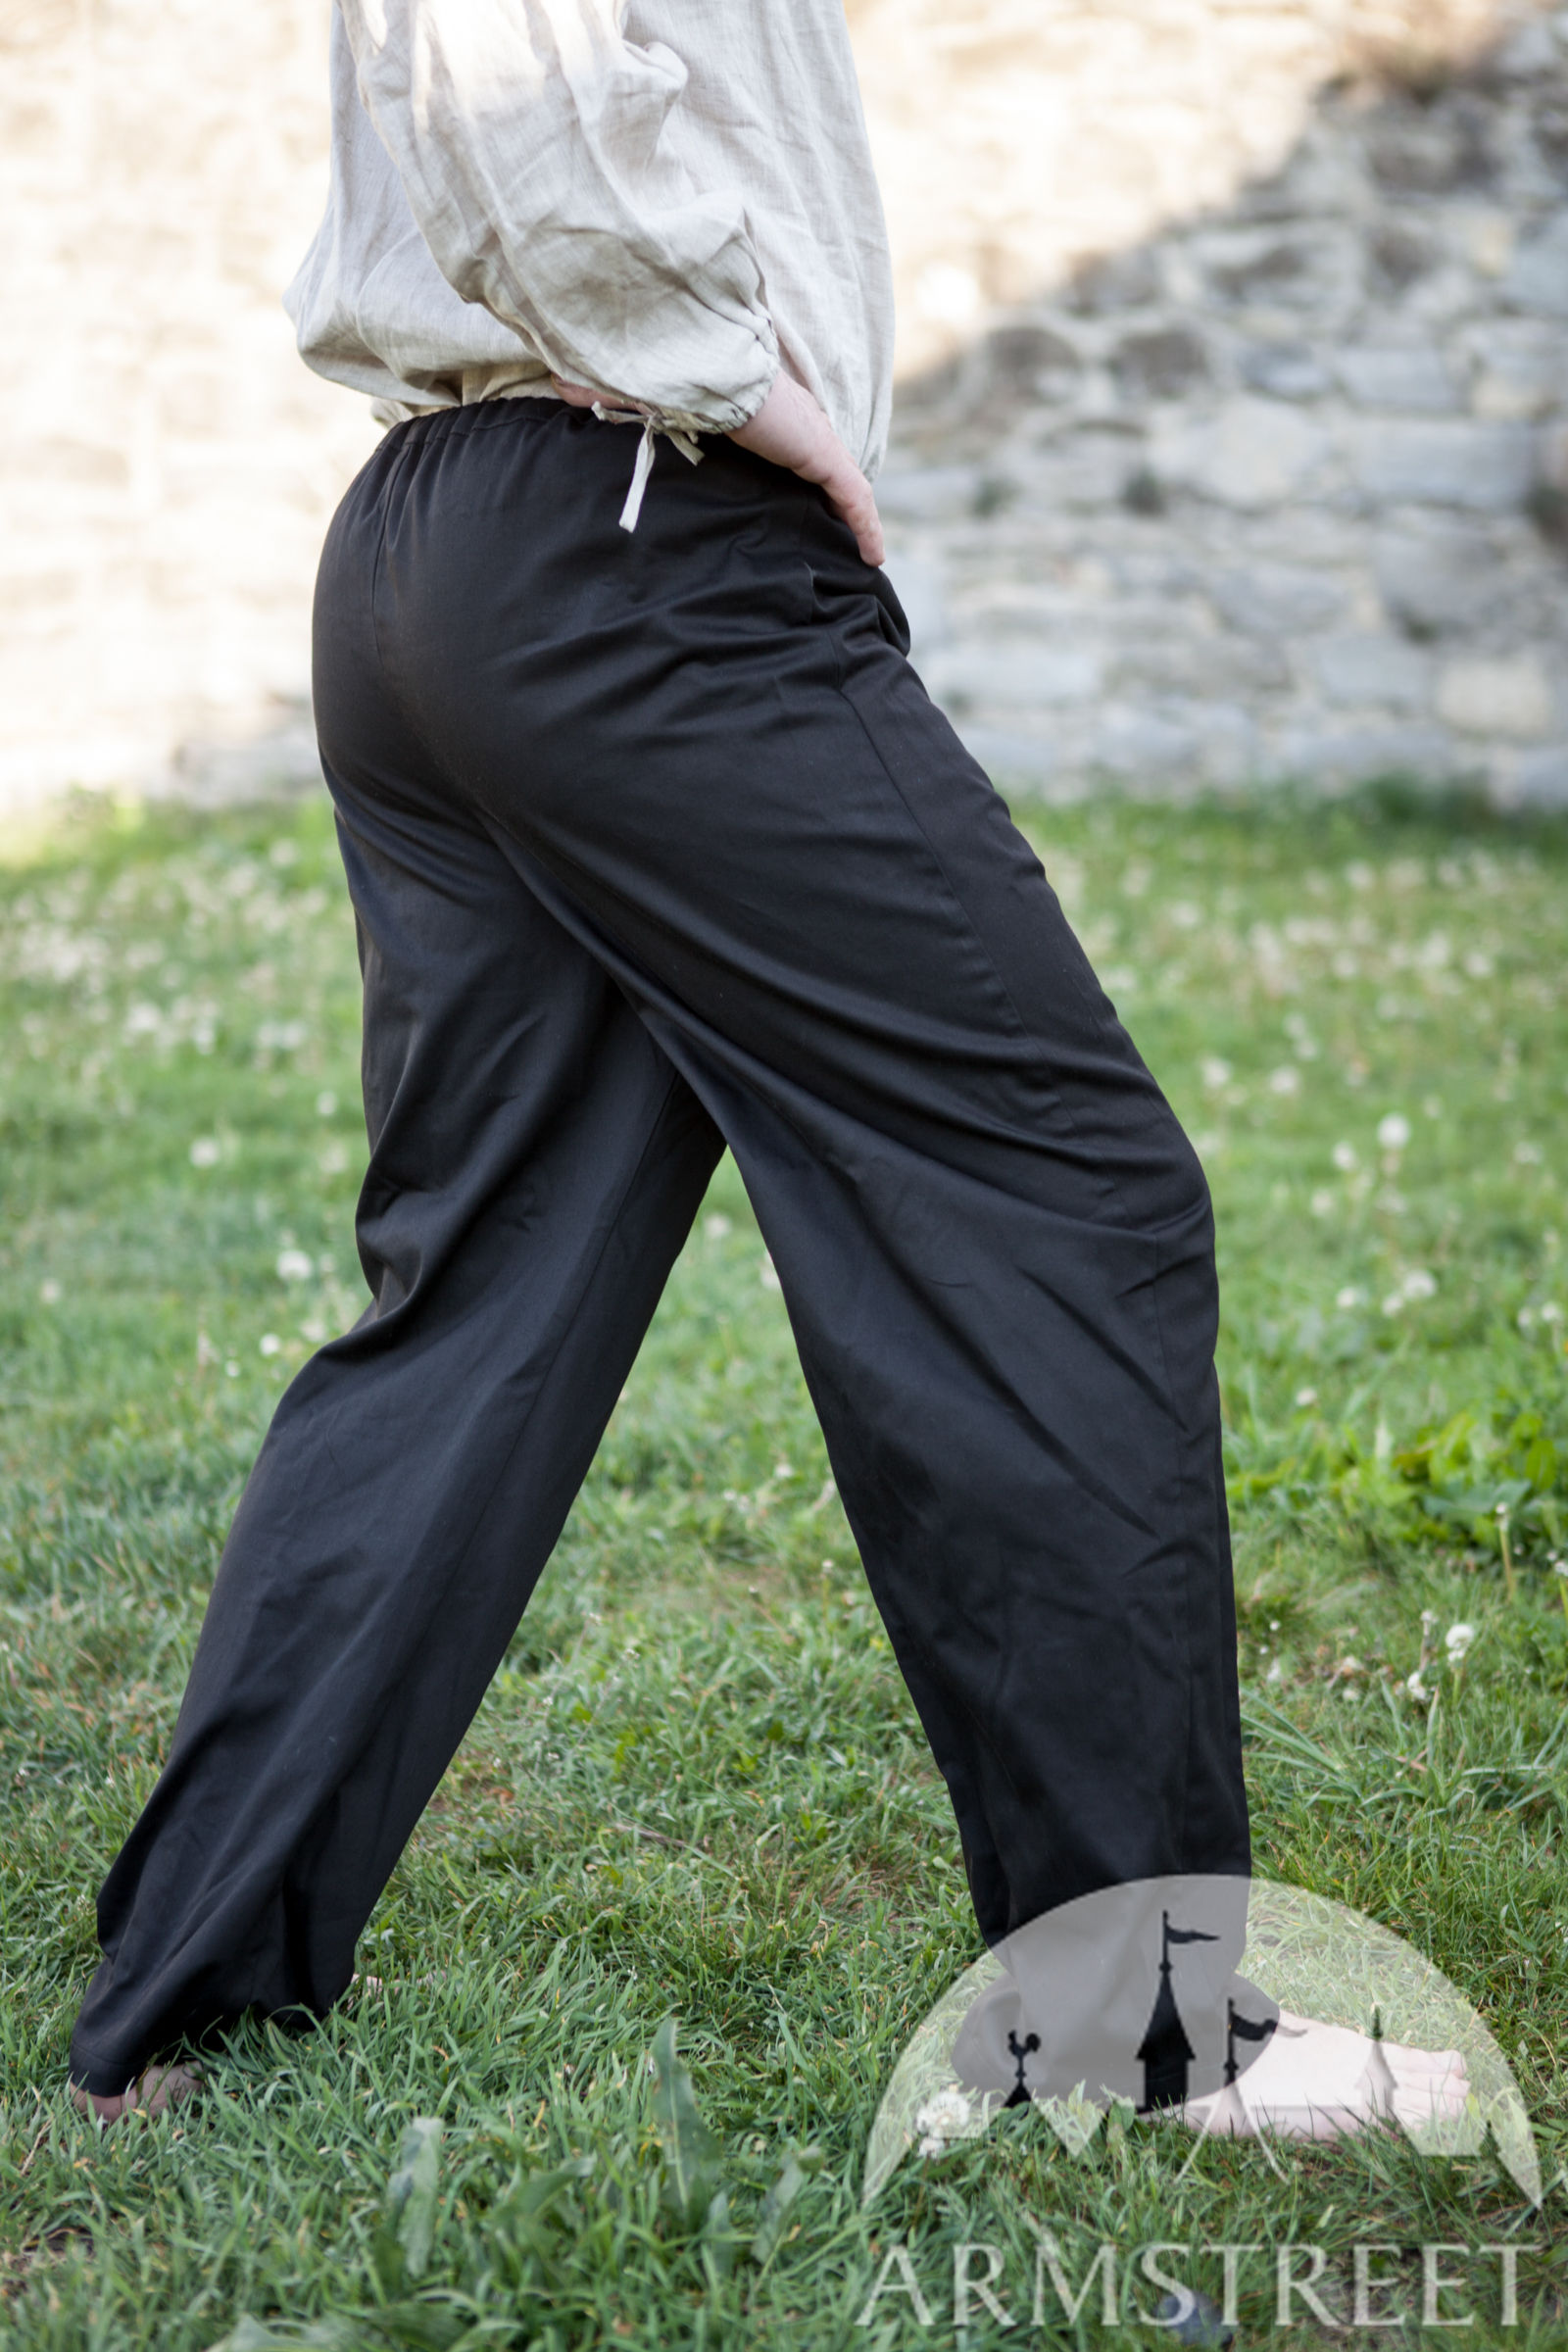 Black cotton medieval pants for sale Available in dark blue cotton green cotton white cotton